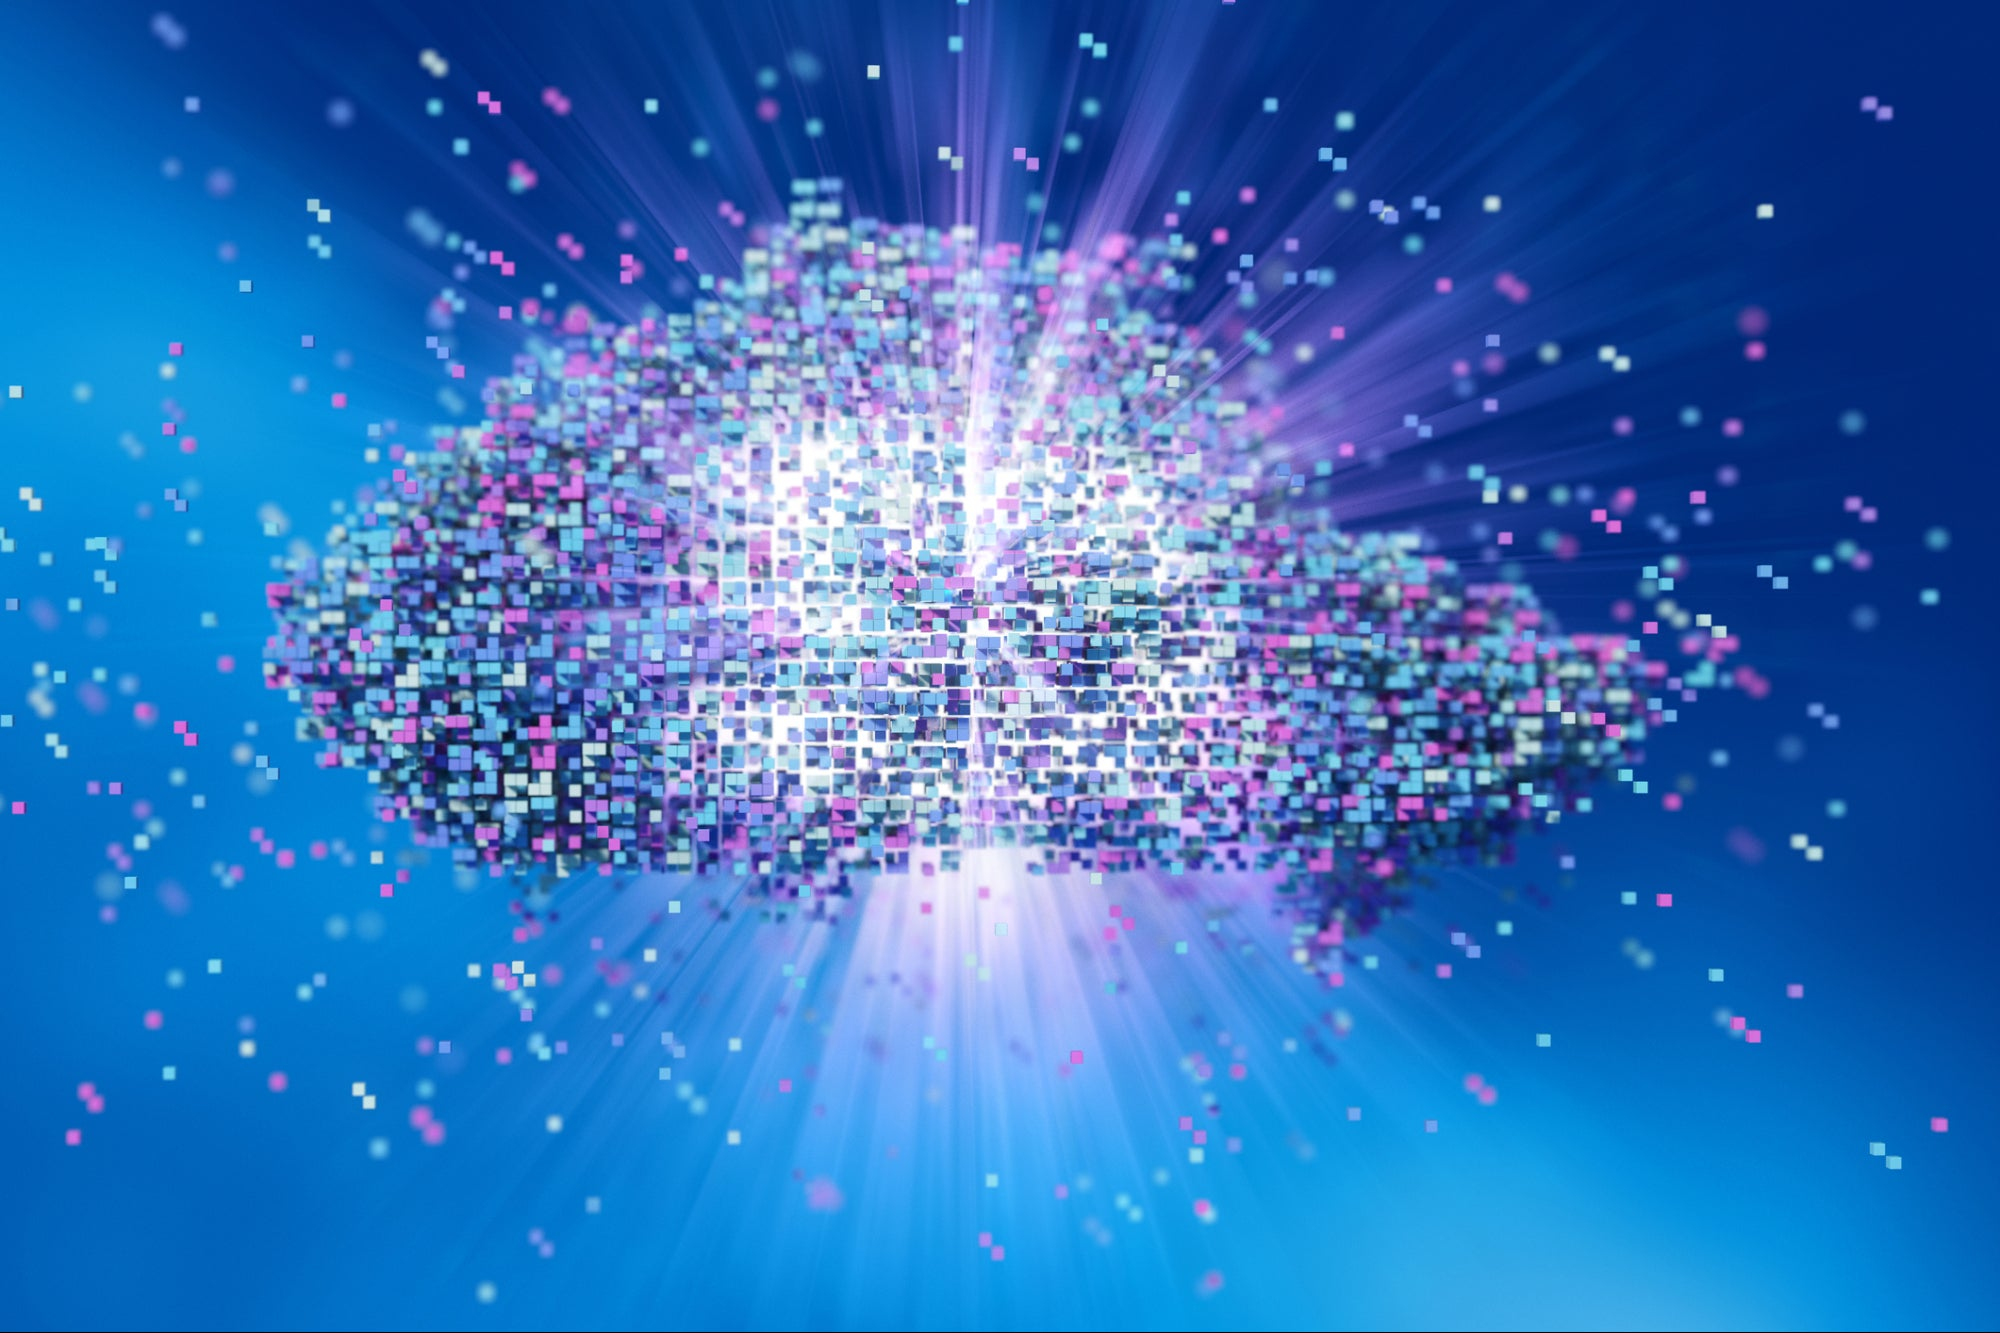 5 Ways the Cloud Can Benefit Your Business During the Pandemic